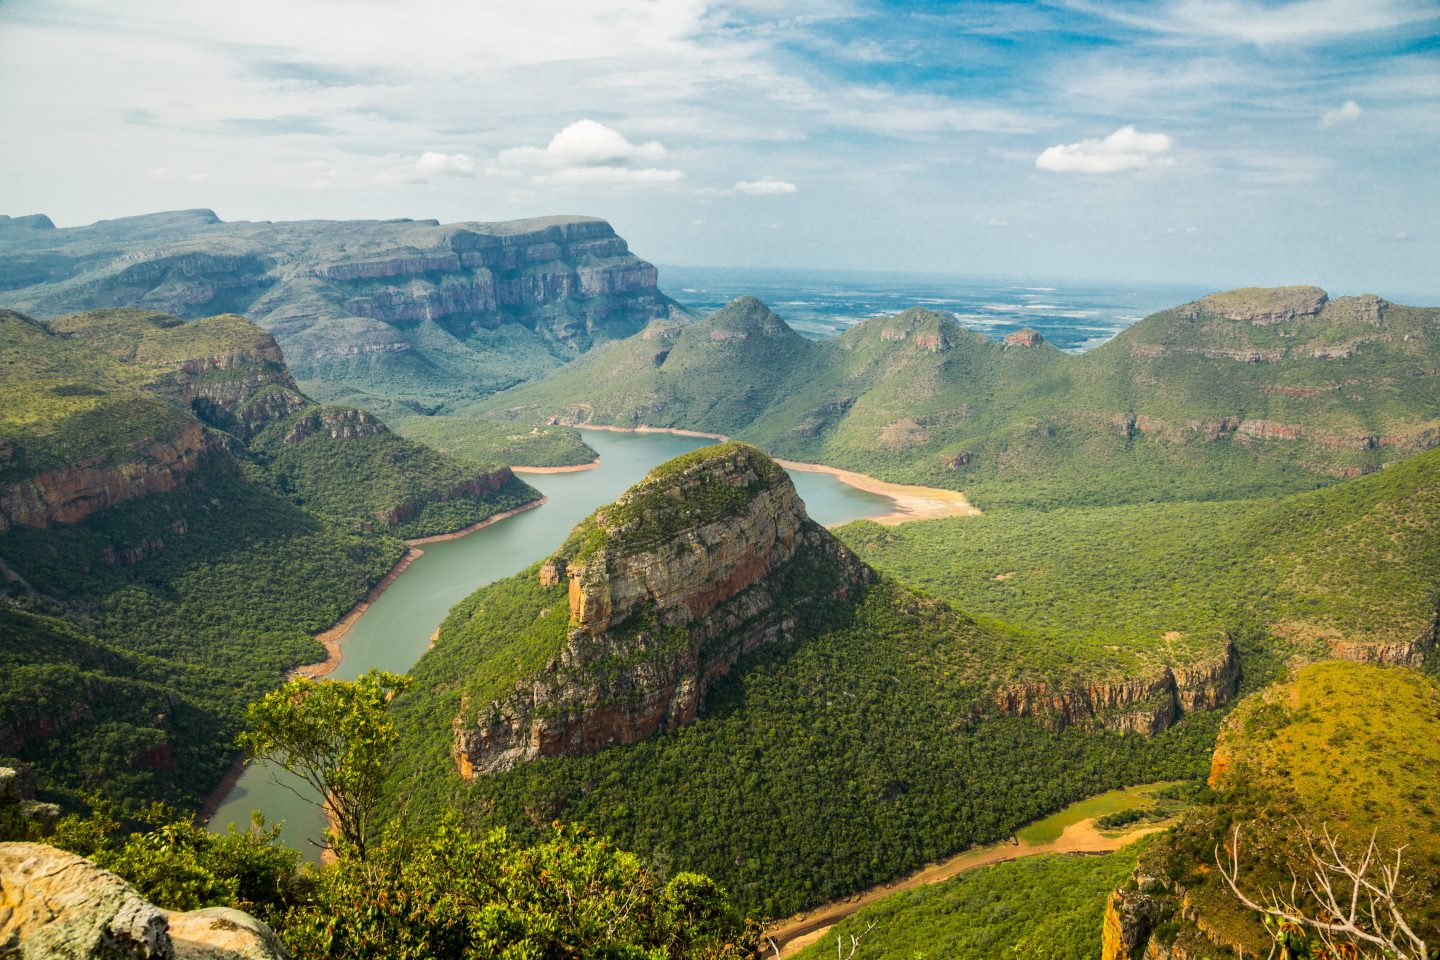 south africa nature, view over landscape, scenic views